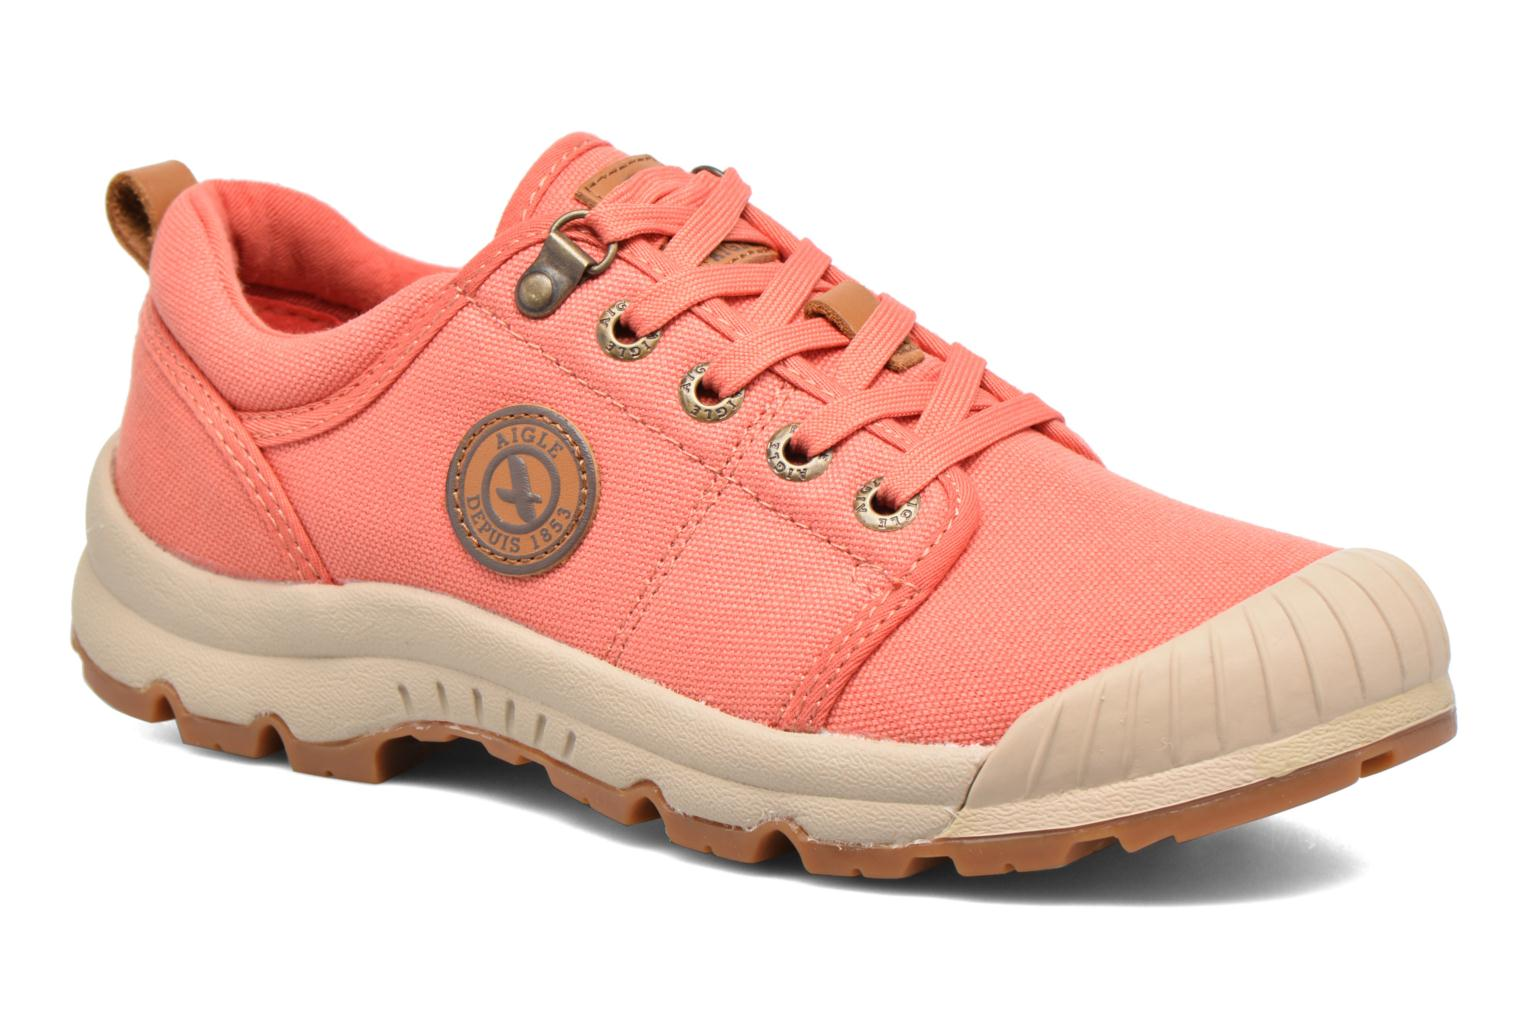 Baskets Aigle Tenere Light Low W Cvs Rose vue détail/paire